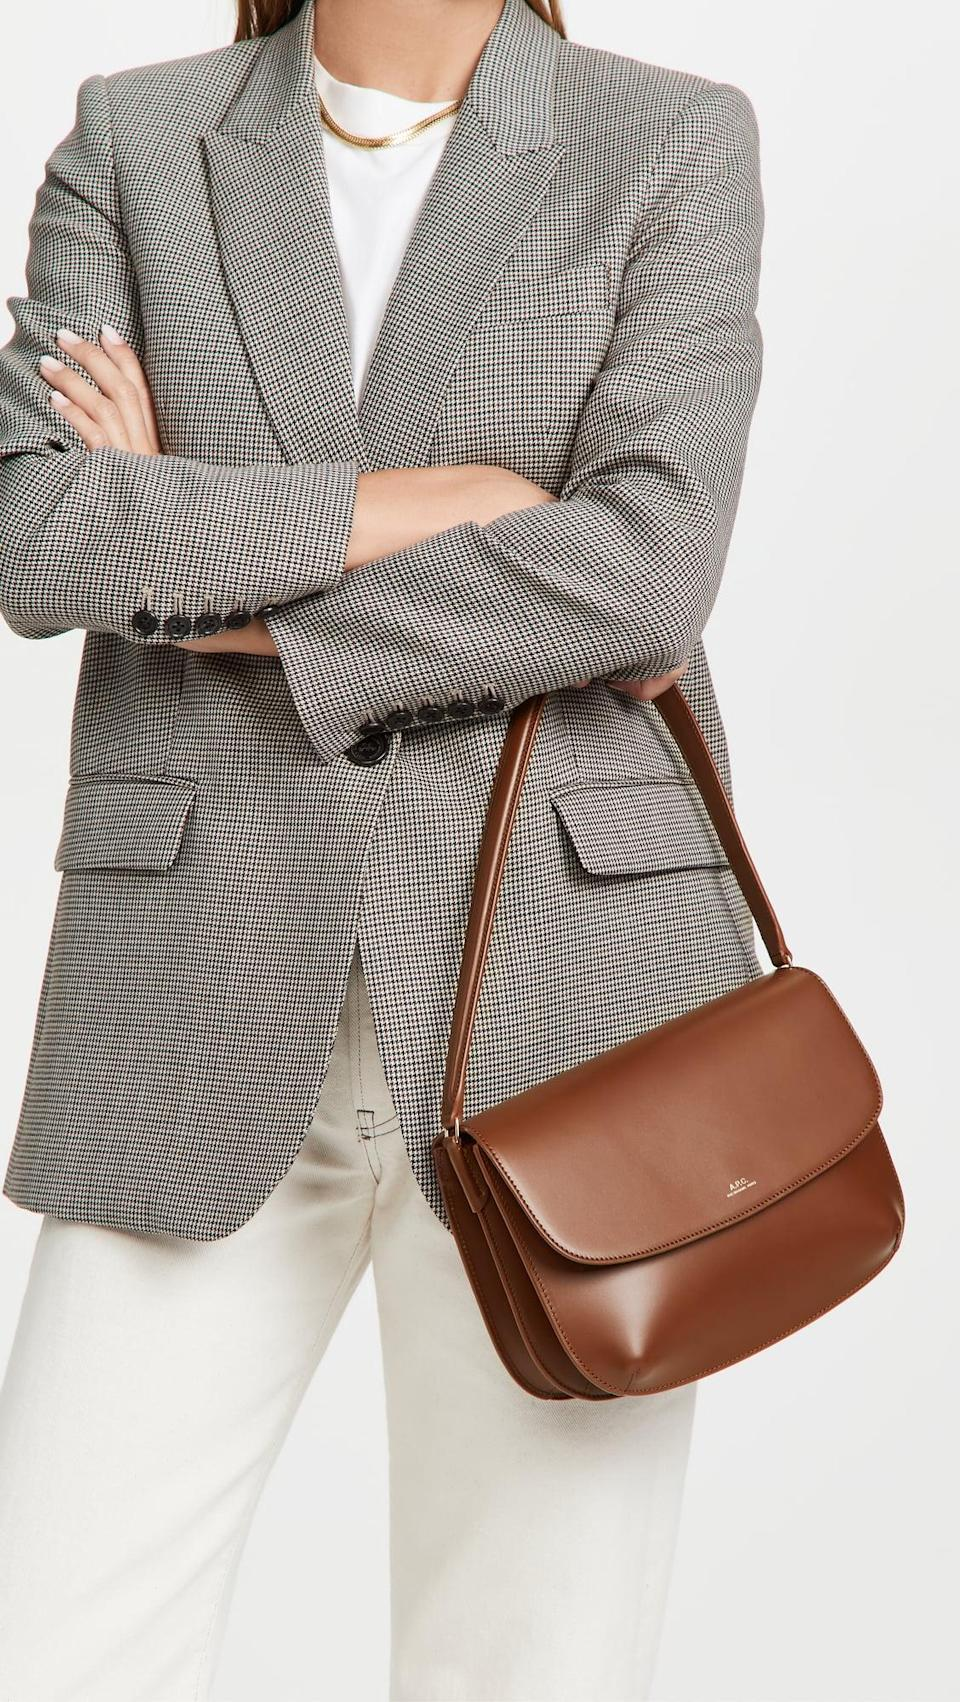 <p>You can't go wrong with the <span>A.P.C. Sarah Shoulder Bag</span> ($575). The perfect brown shade will easily pair with every fall outfit you have.</p>